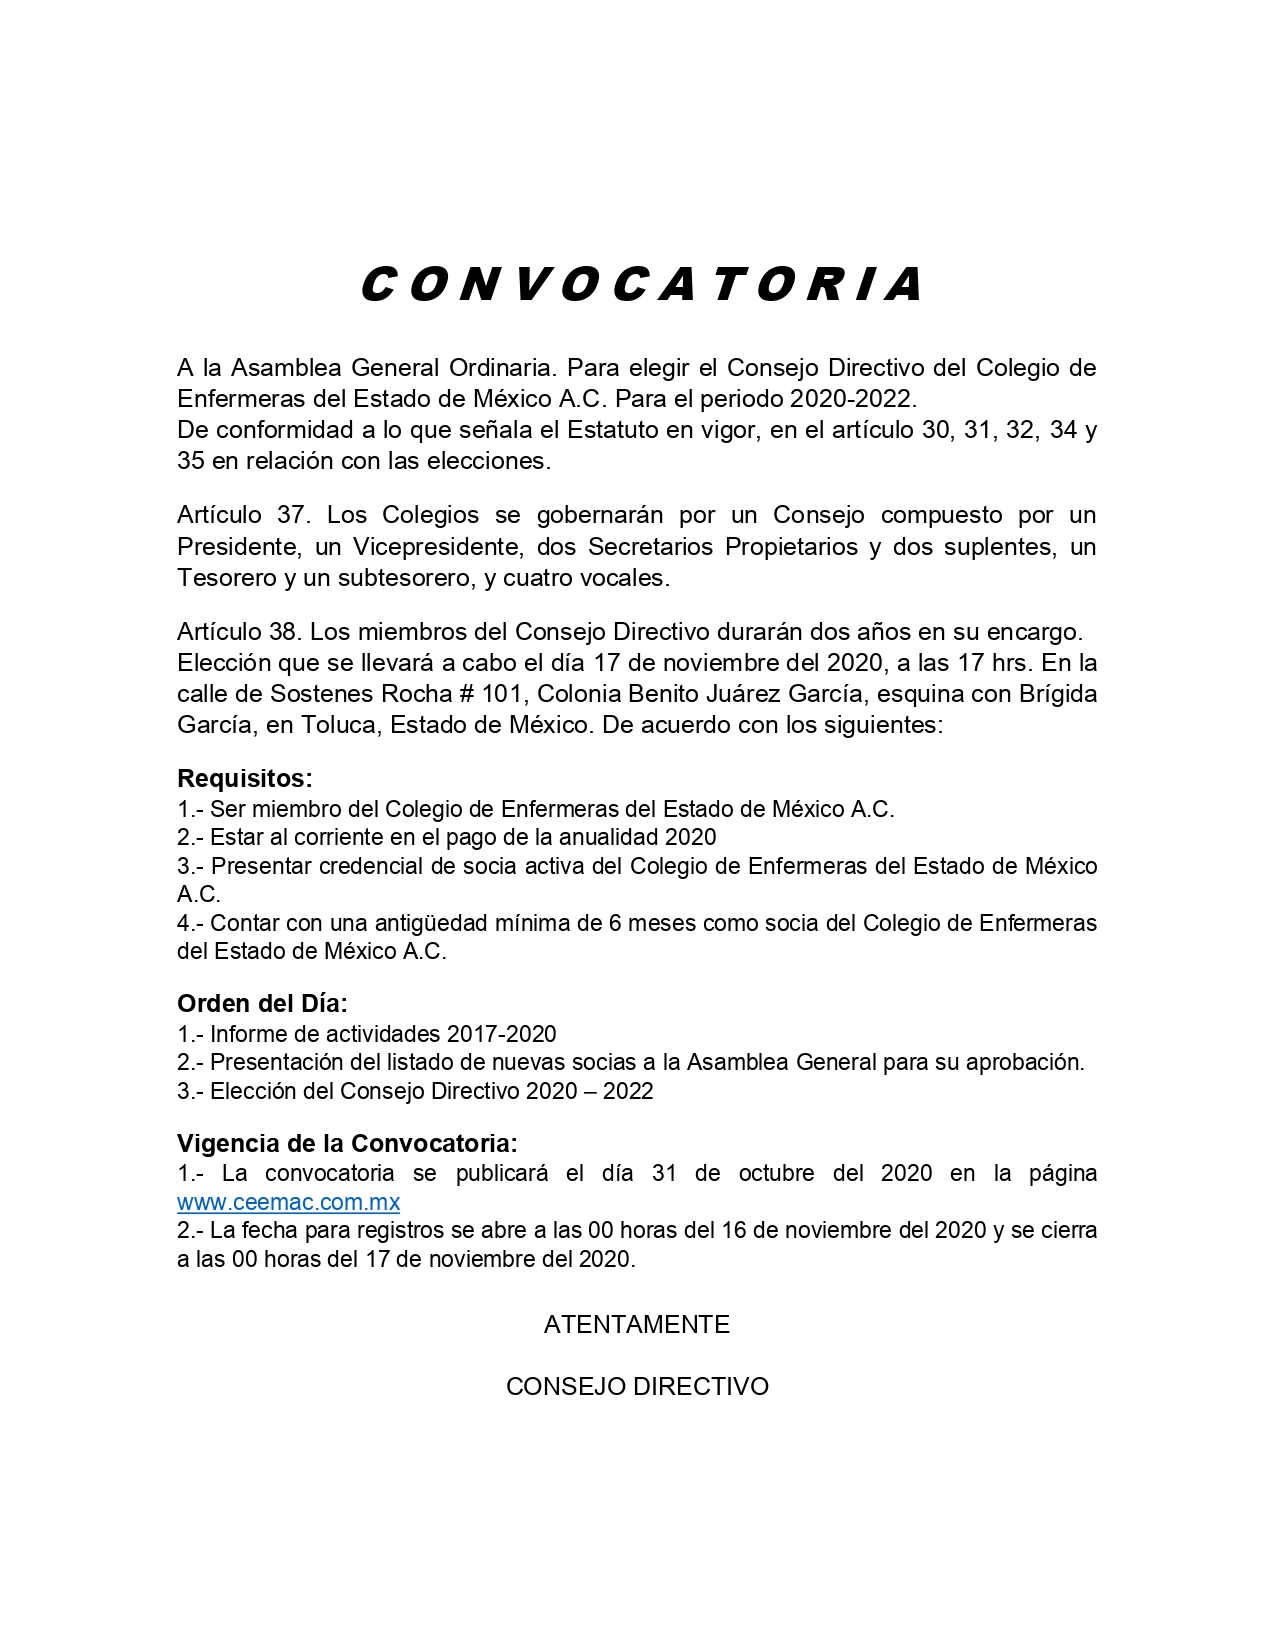 CONVOCATORIA CONSEJO DIRECTIVO_pages-to-jpg-0001